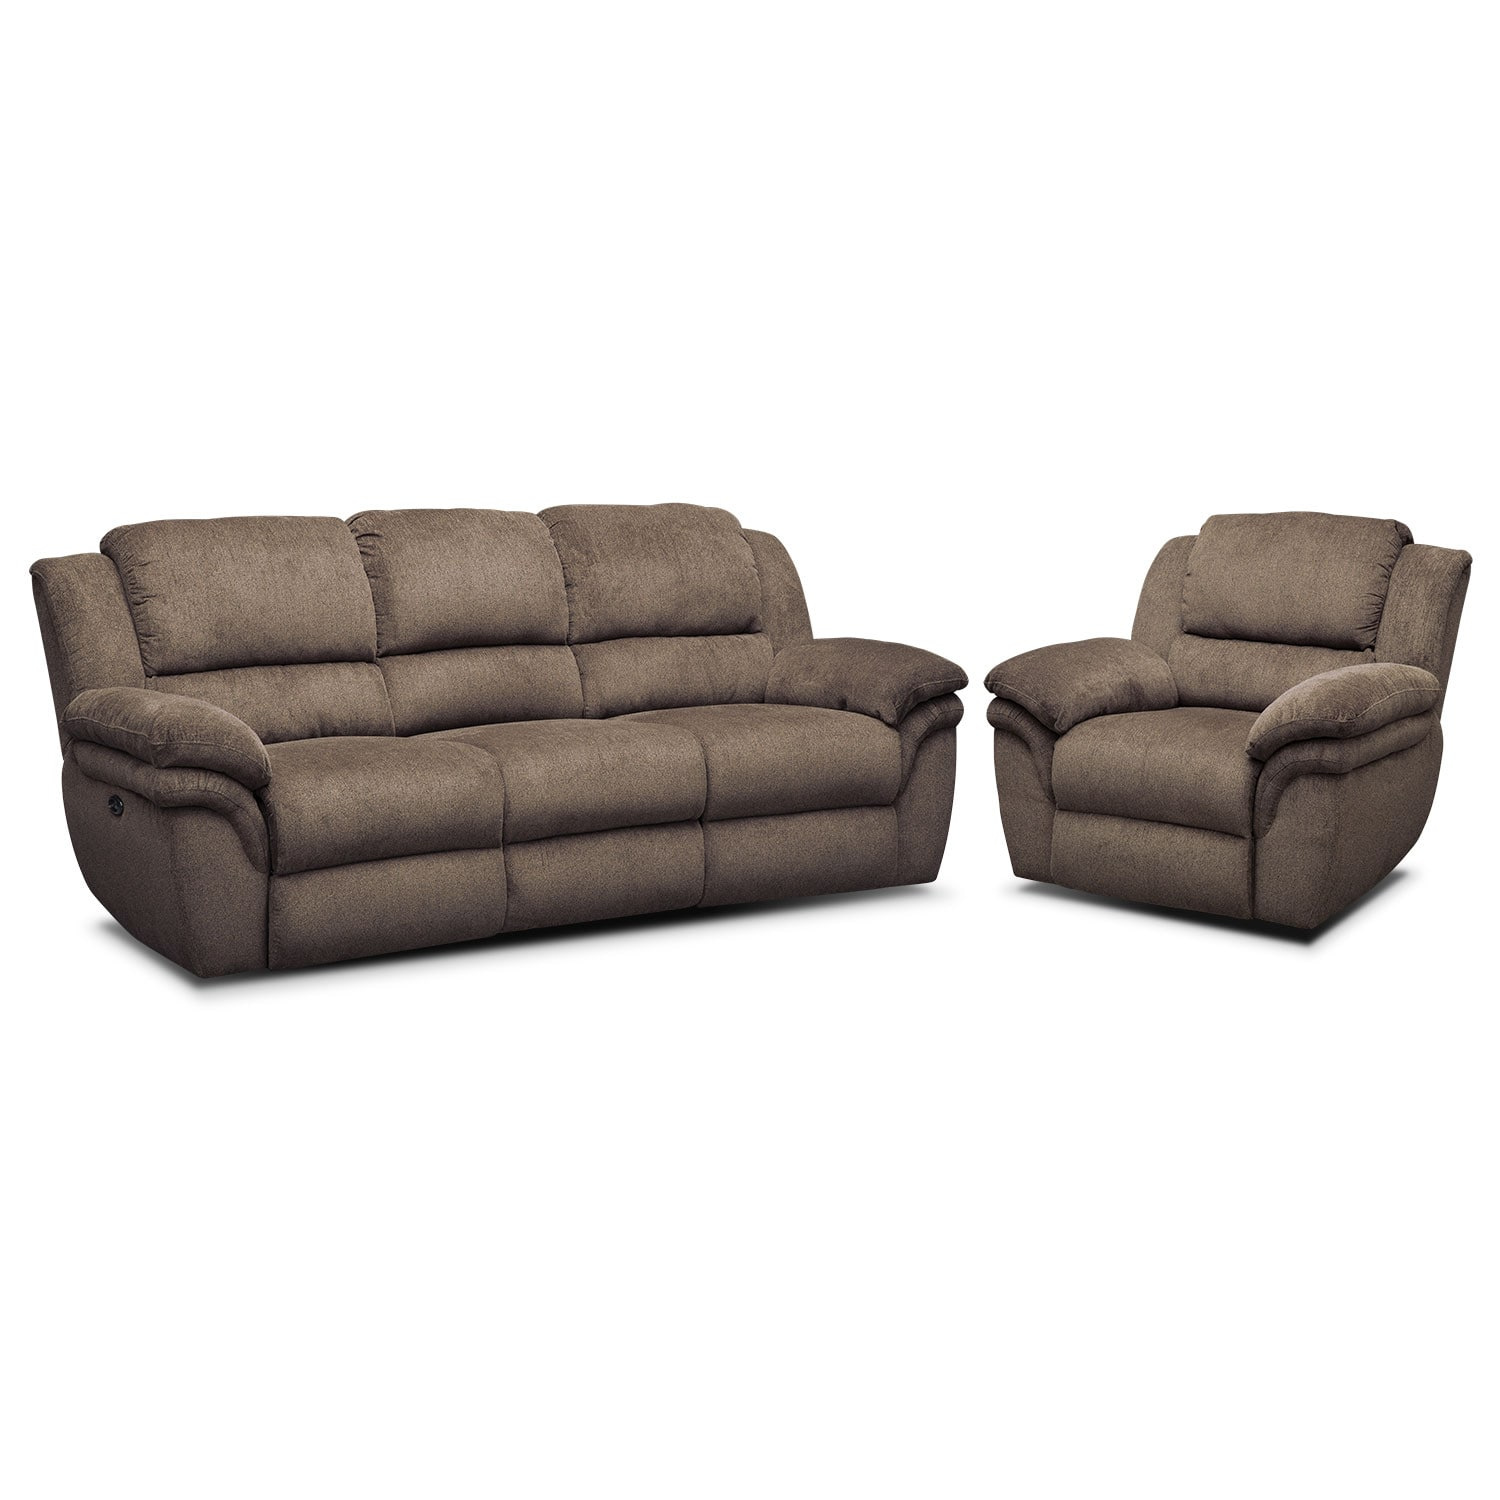 Living Room Furniture - Aldo Power Reclining Sofa and Recliner Set